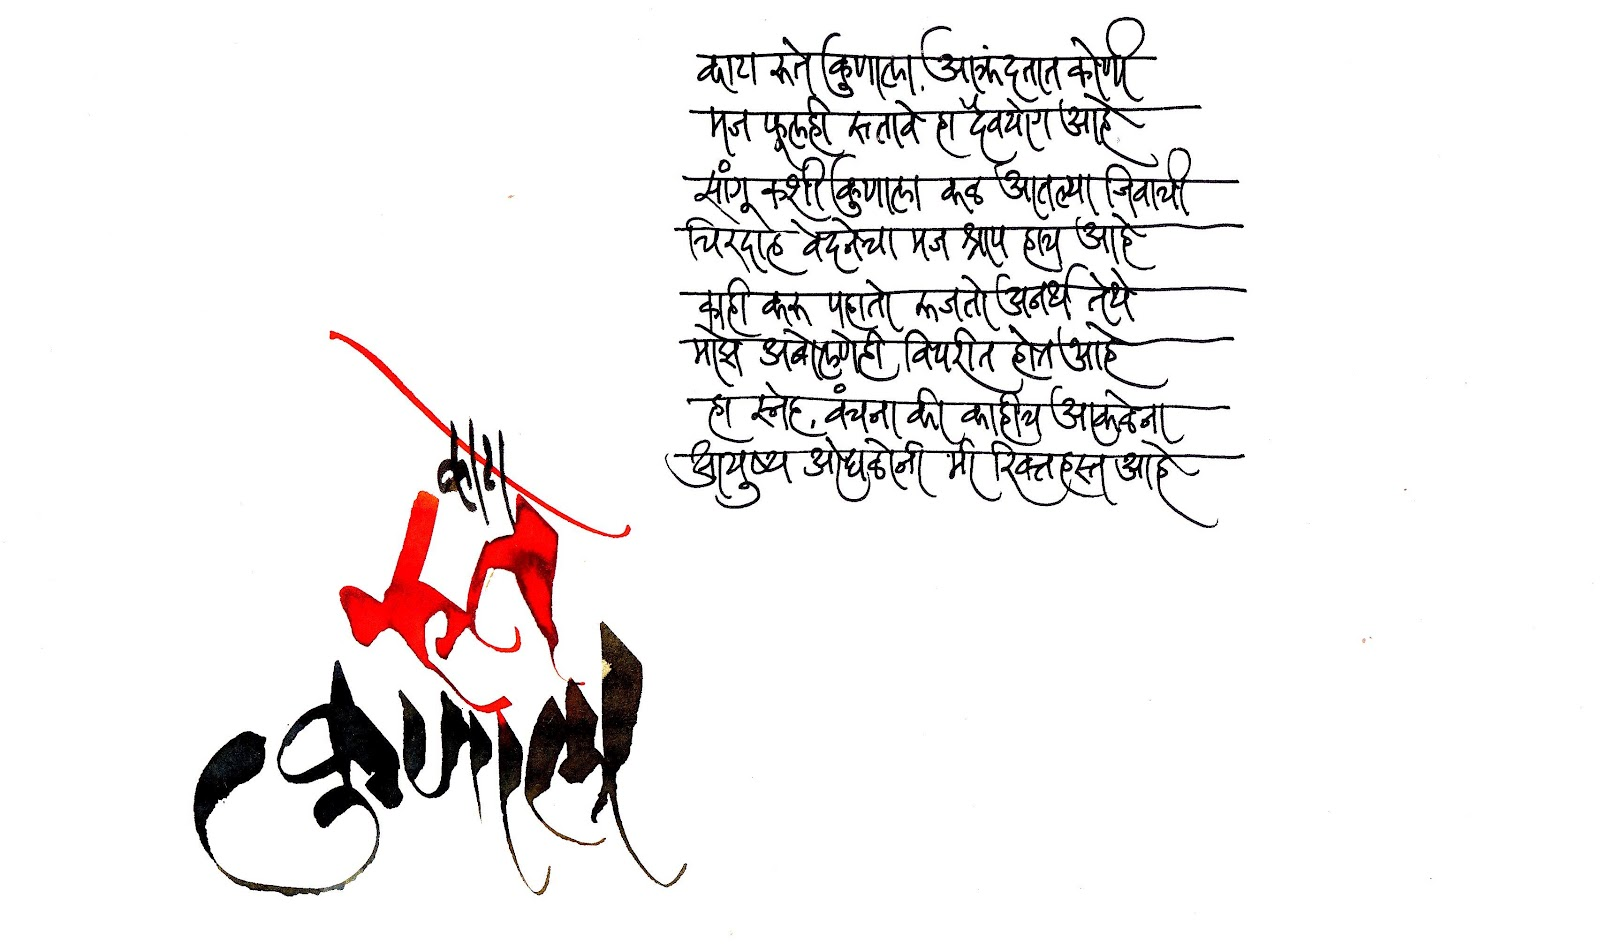 Calligraphy Online Generator Calligraphic Expressions By B G Limaye Calligraphy 02 03